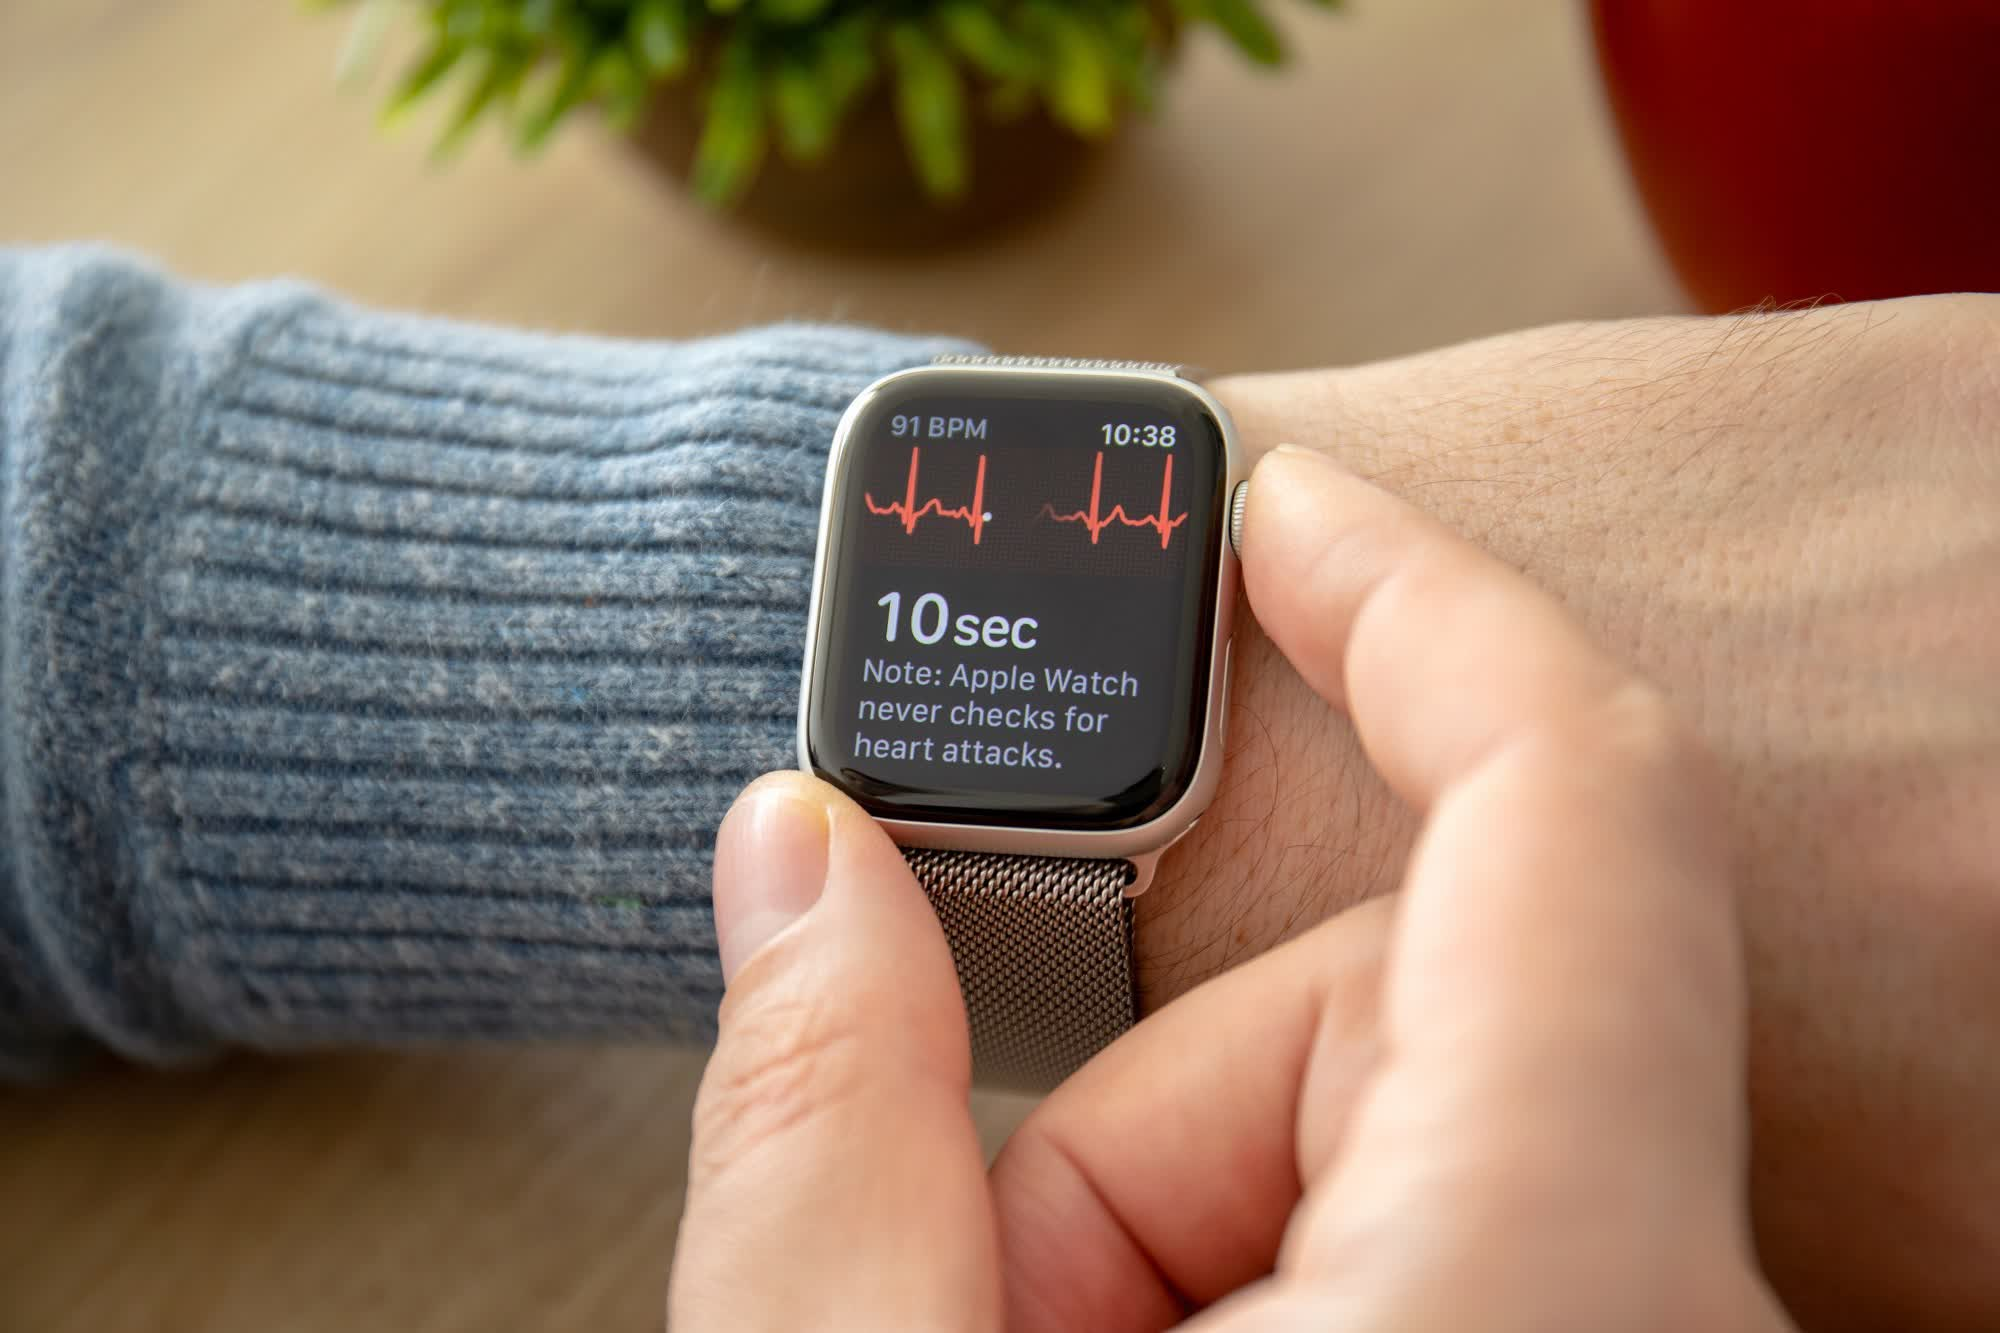 Apple's alleged monopolistic practices called rotten to the core in Apple Watch ECG lawsuit